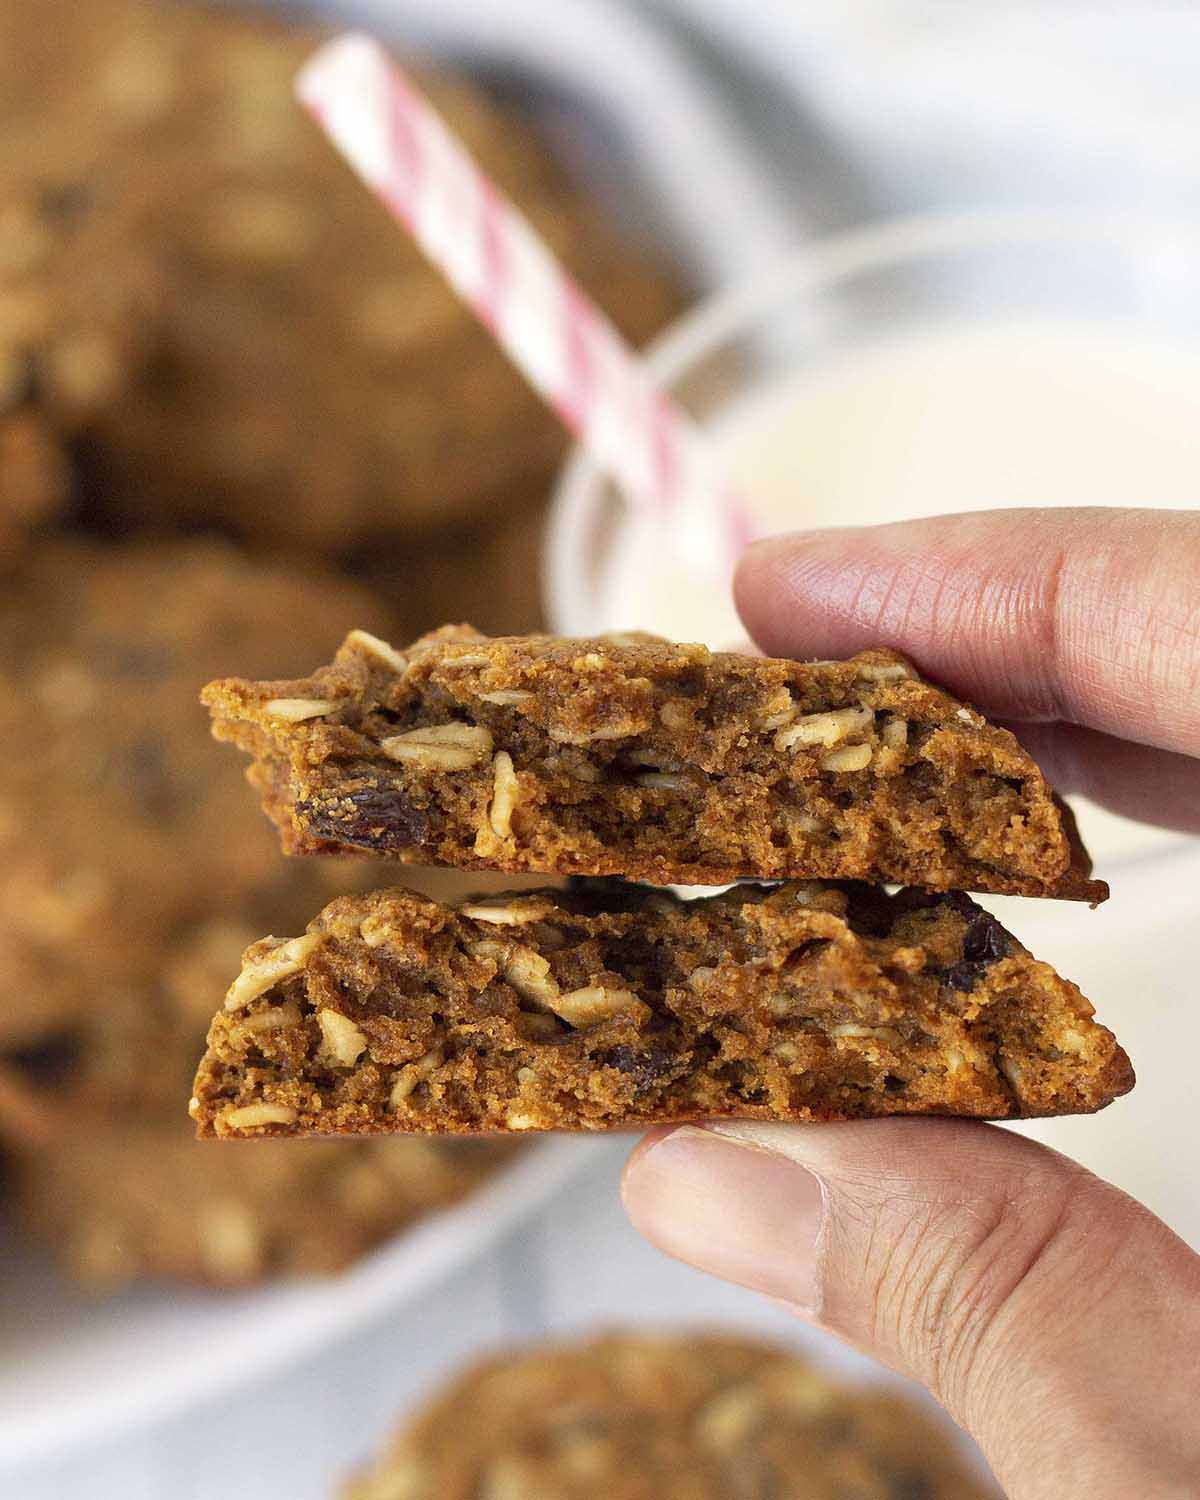 Image shows a hand holding an oatmeal raisin cookie that has been broken in half to show the soft inside of the cookie.